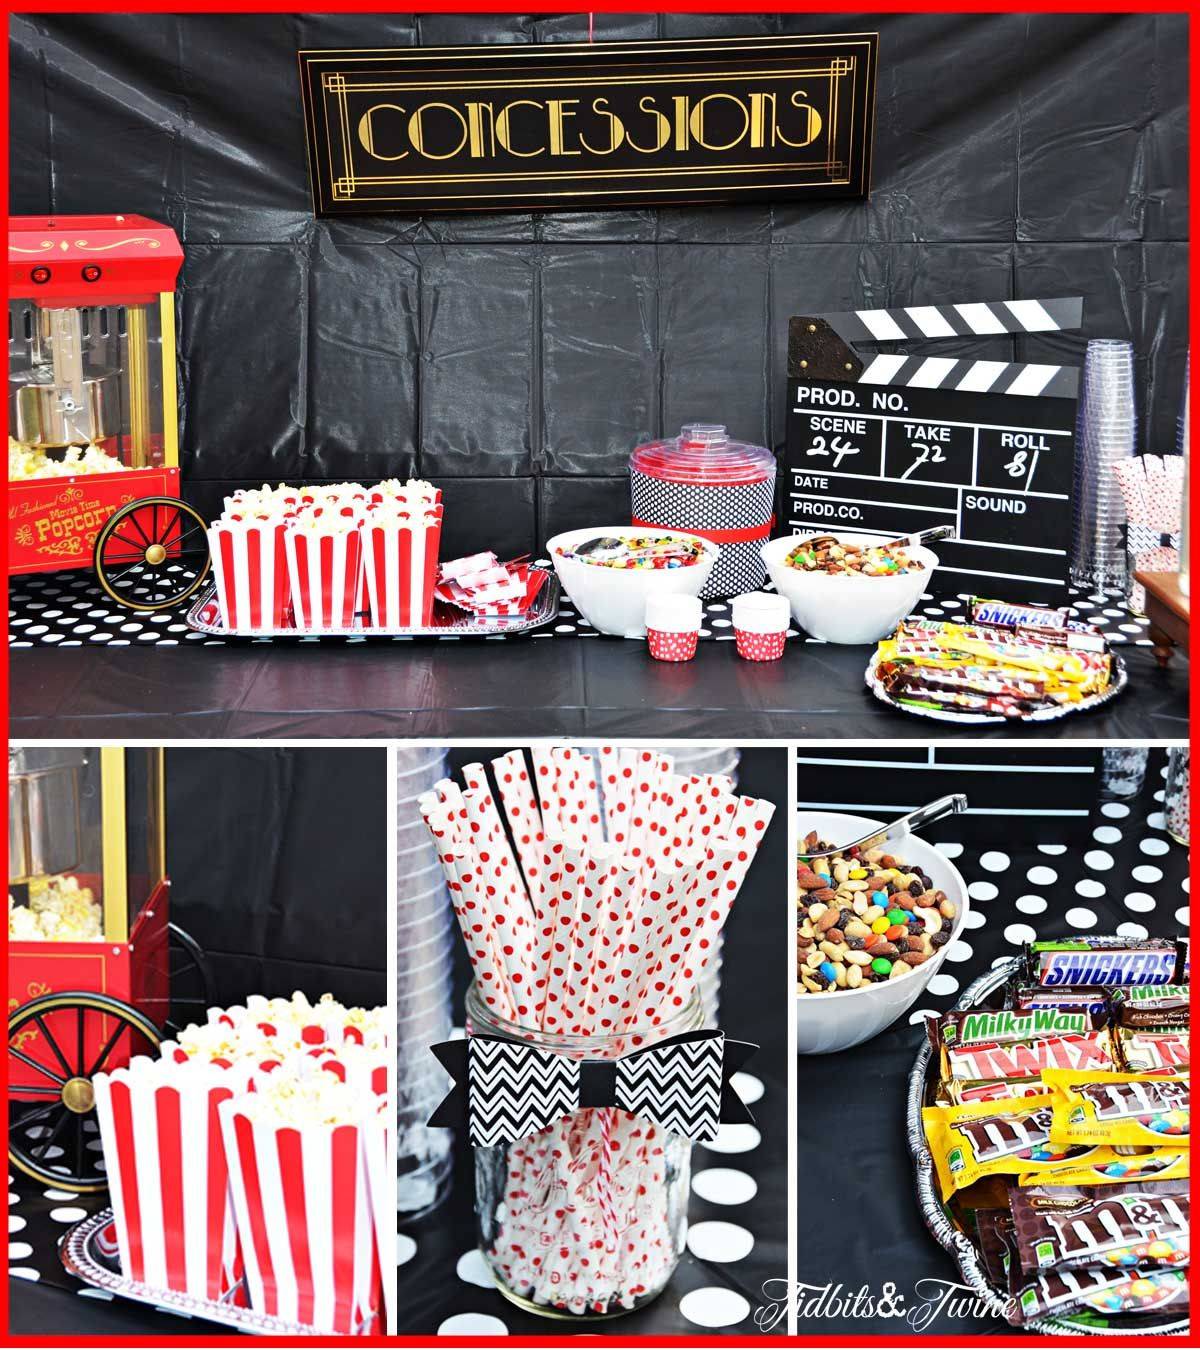 Concession Stand For Theater Room With Images: Image Result For Movie Party Concession Stand